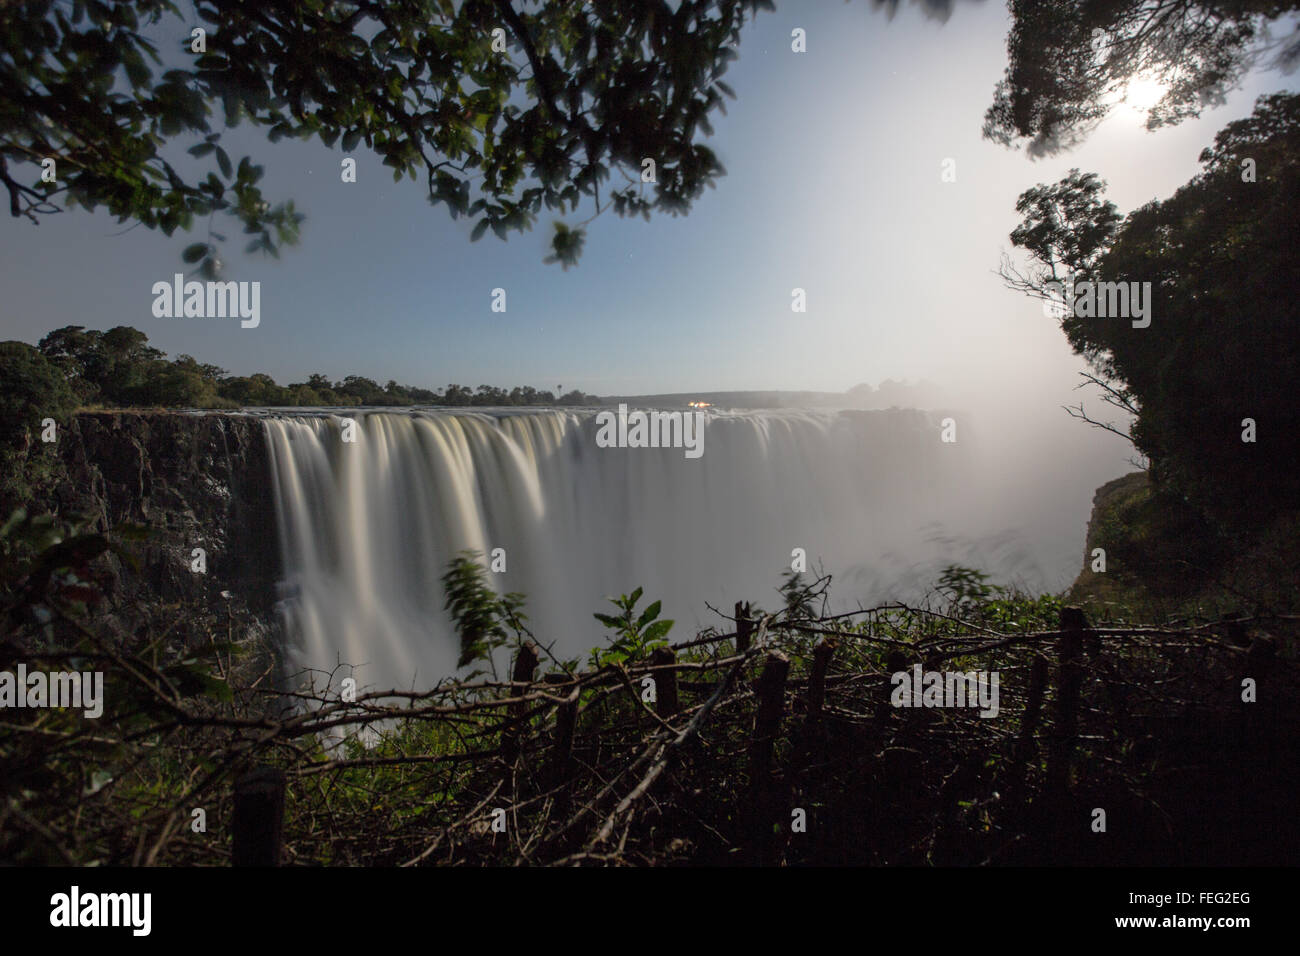 Lunar rainbow at Victoria falls - Stock Image